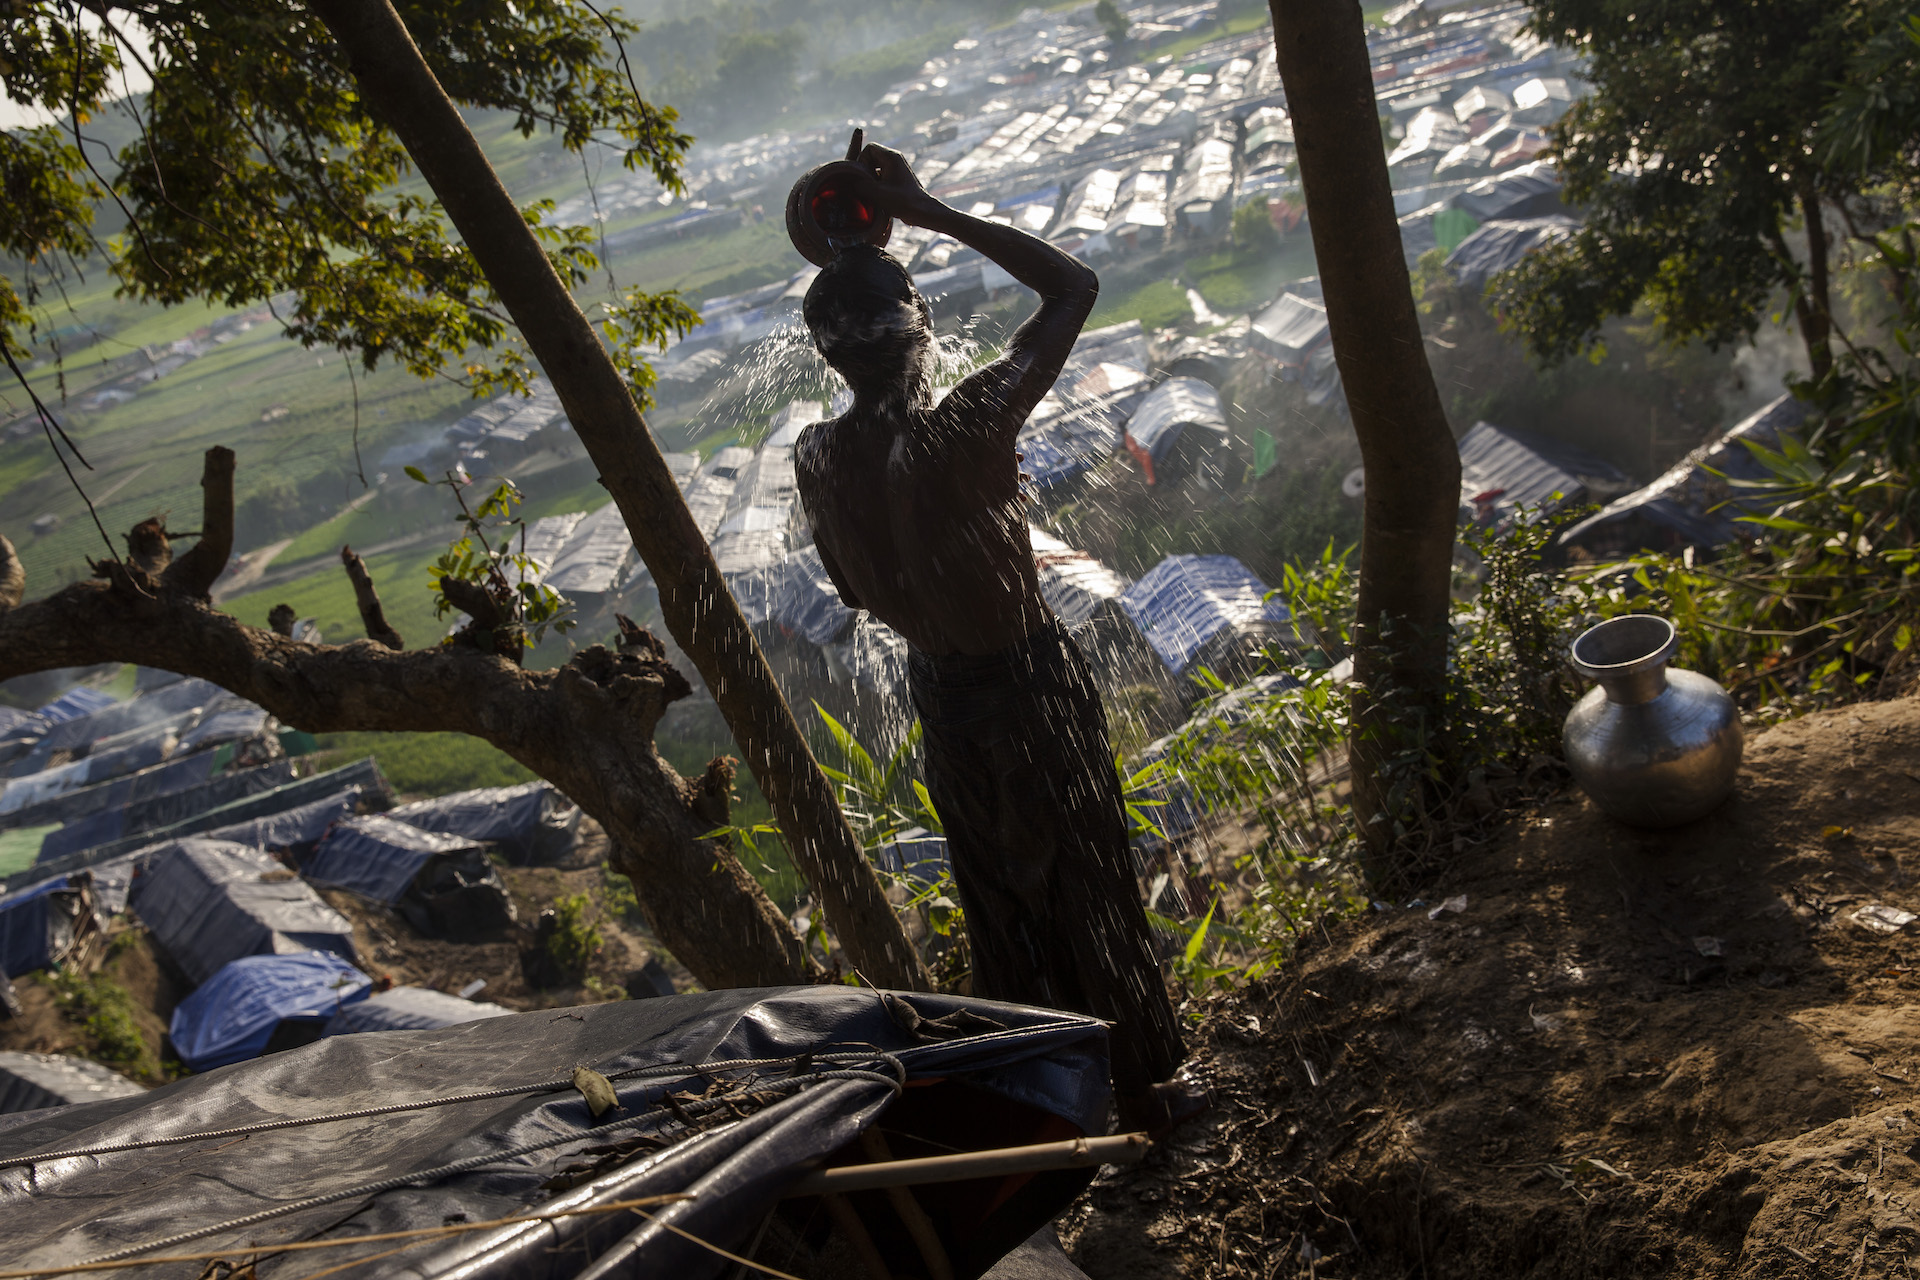 A Rohingya man washes himself on a hill overlooking tarpaulin-covered shelters